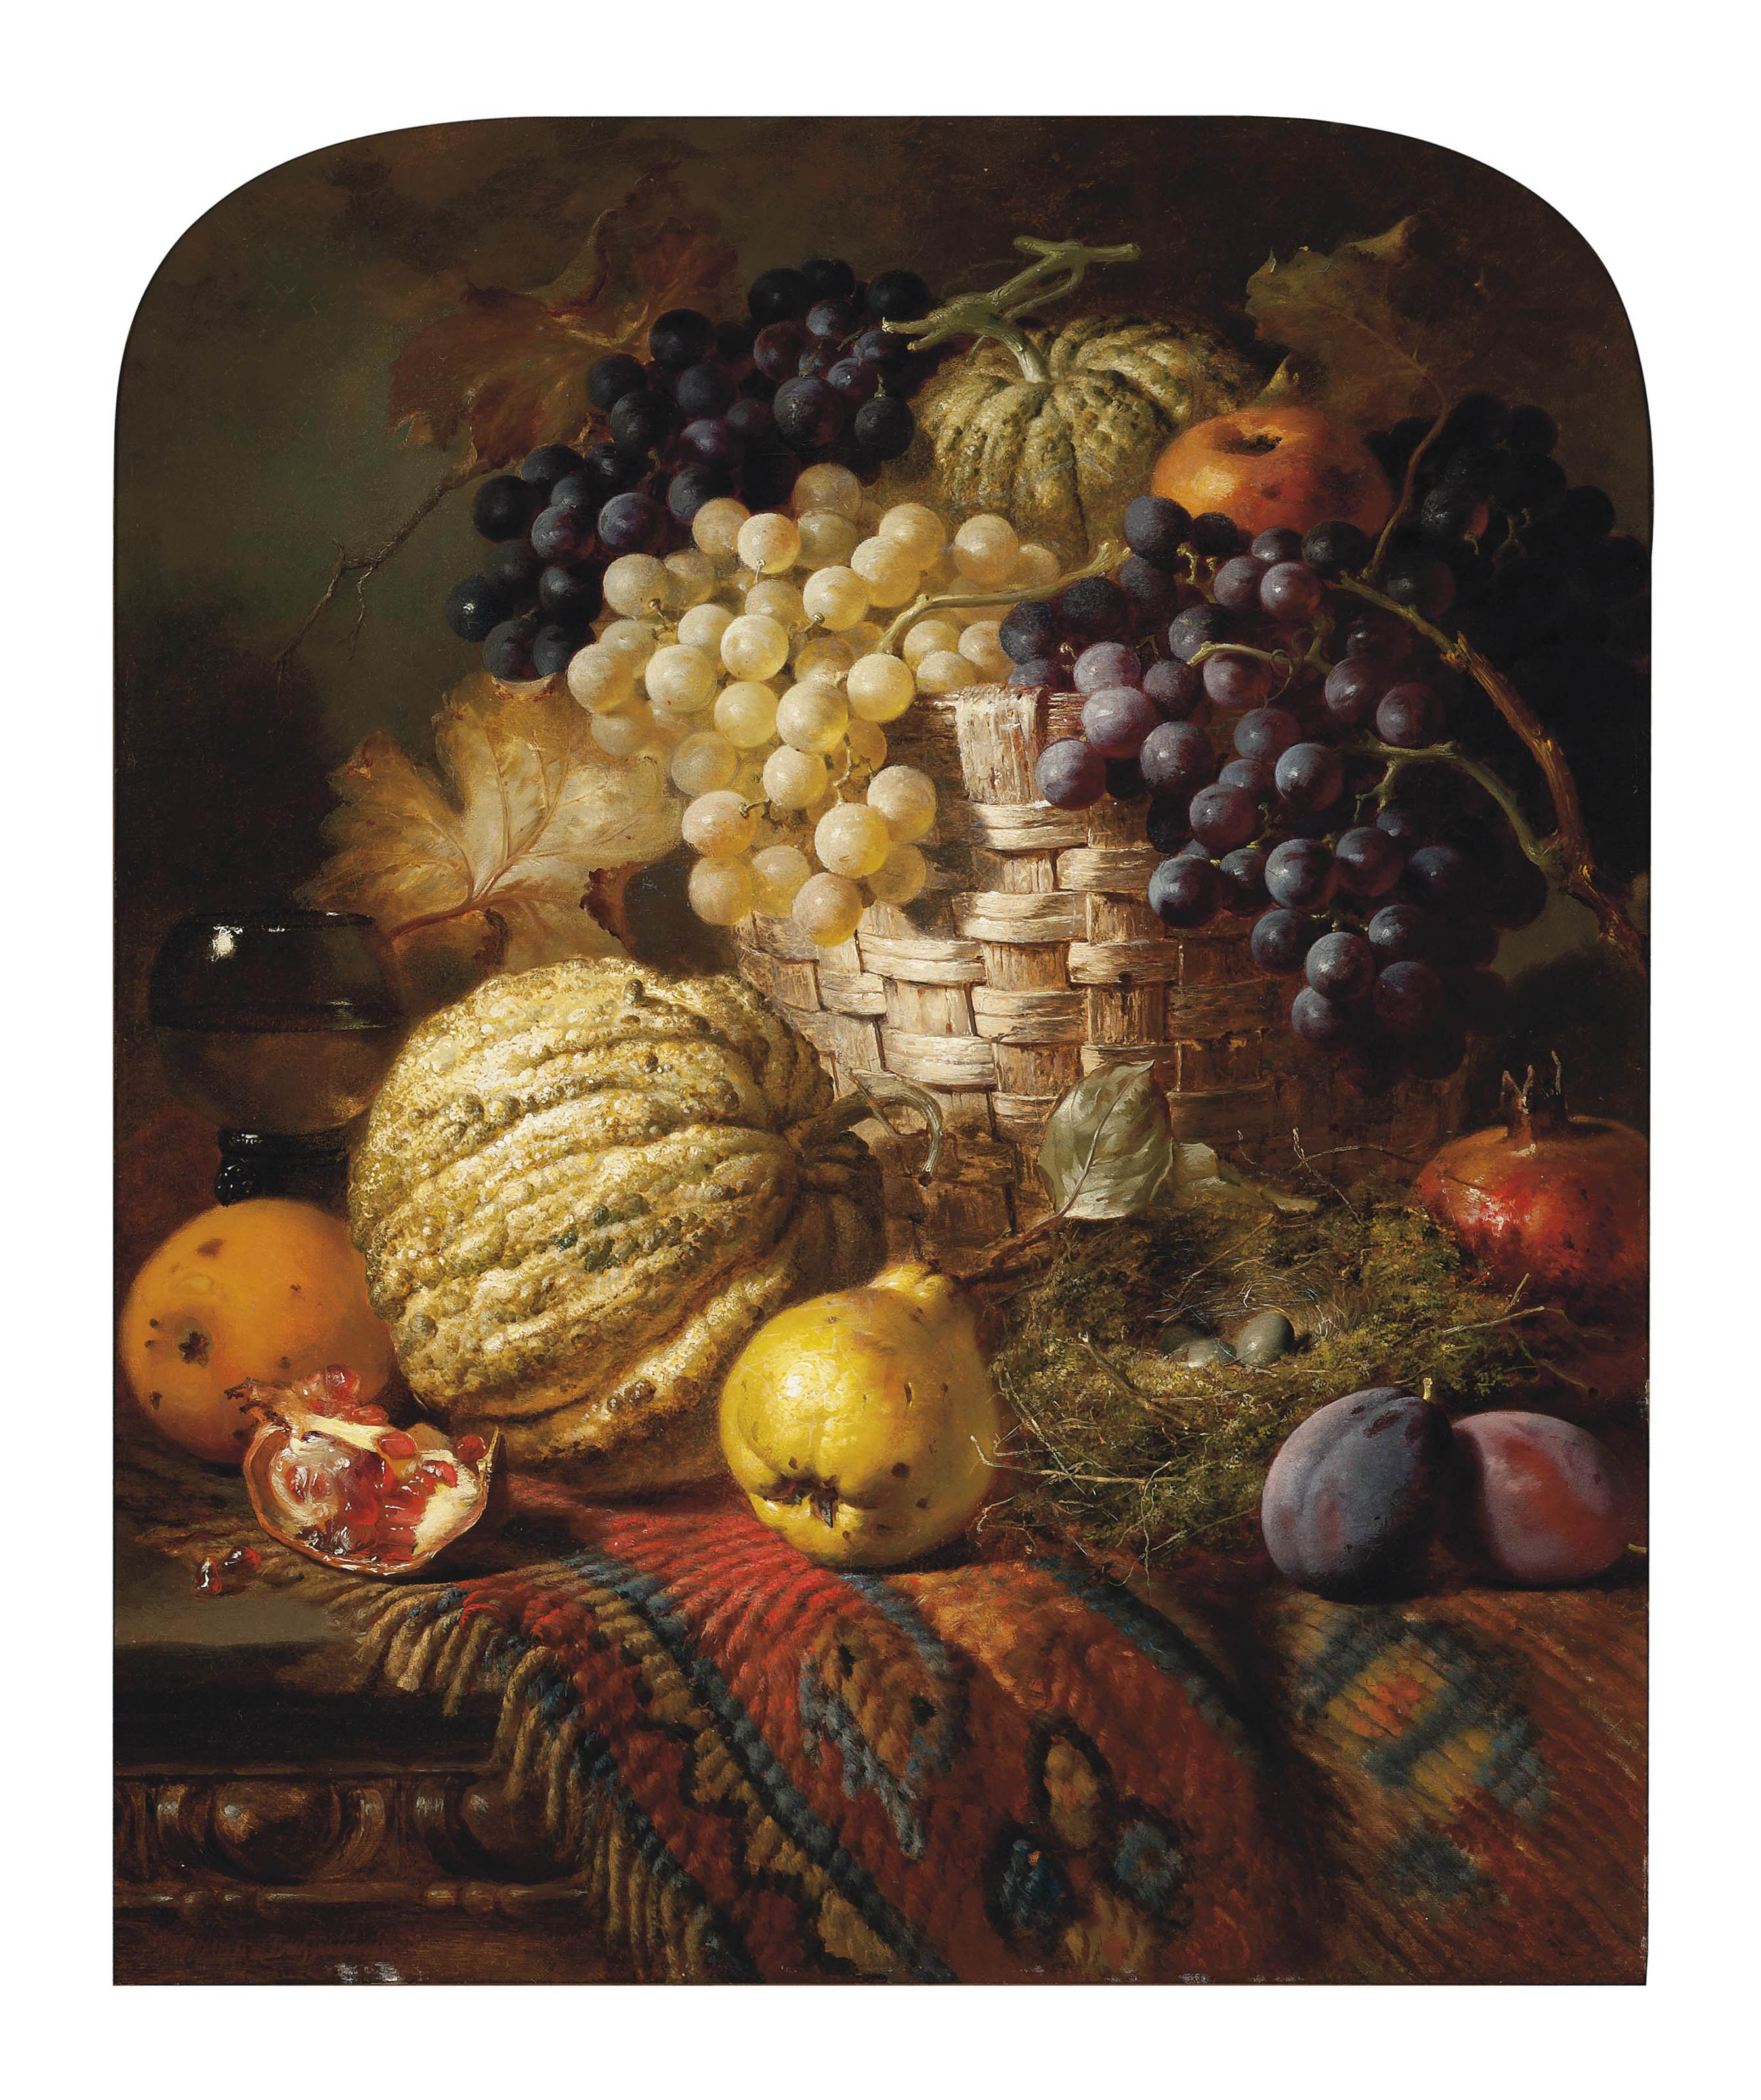 Fruit, a roemer, a wicker basket and bird's nest on a wooden table